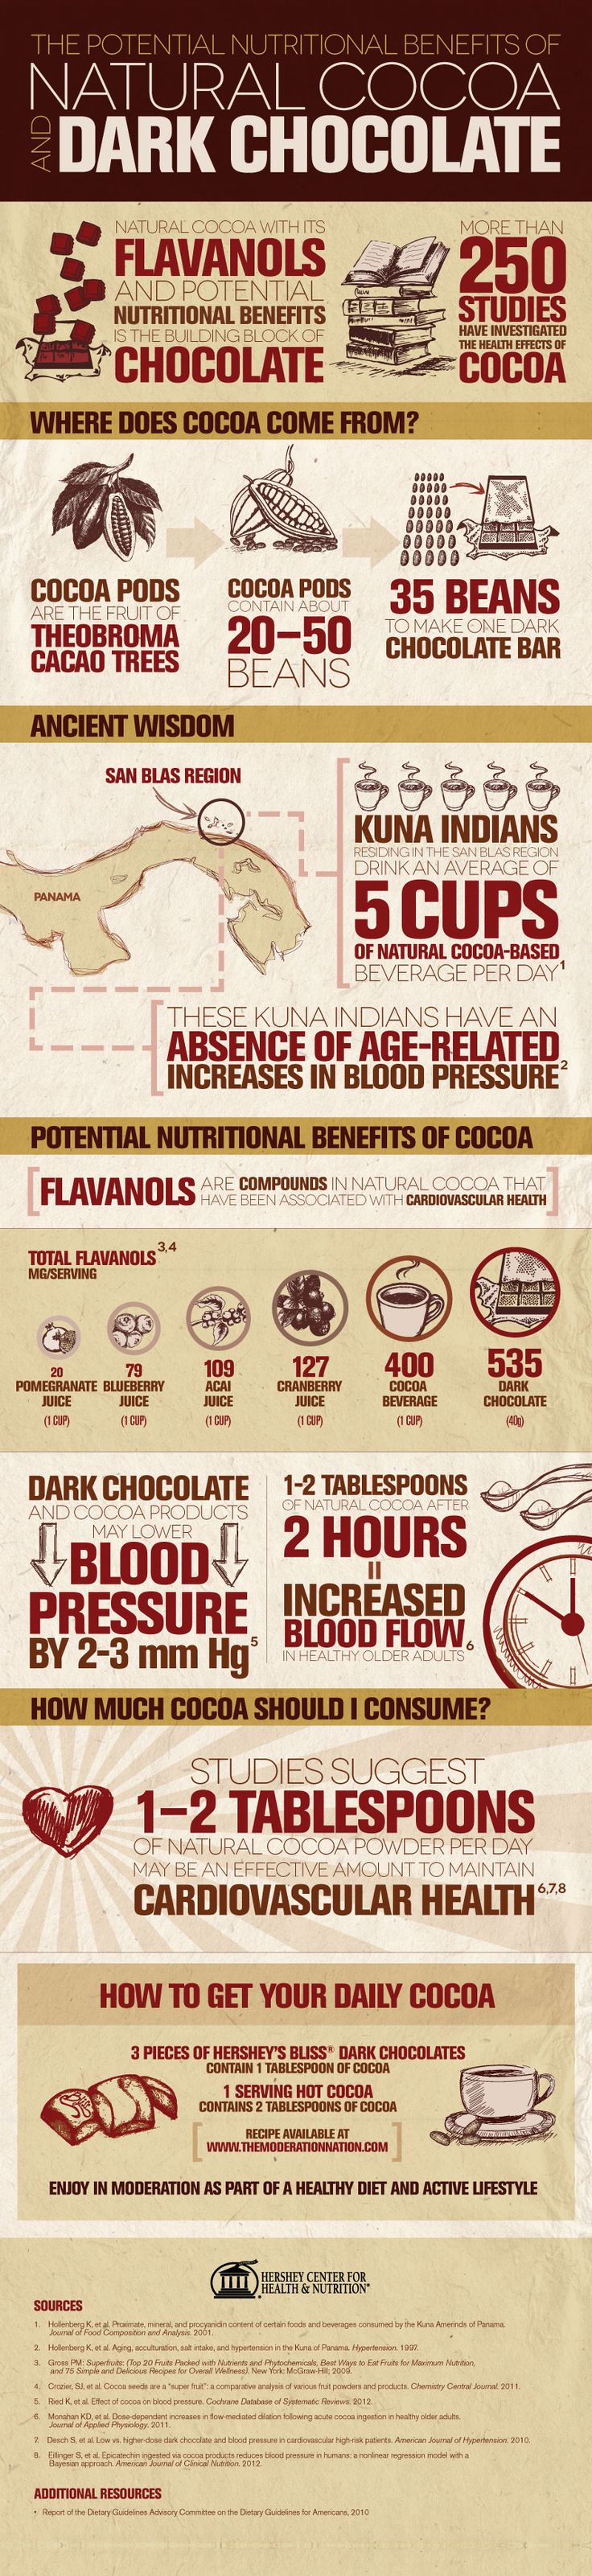 You may have heard how great dark chocolate is, but did you know about the health benefits? Check them out!